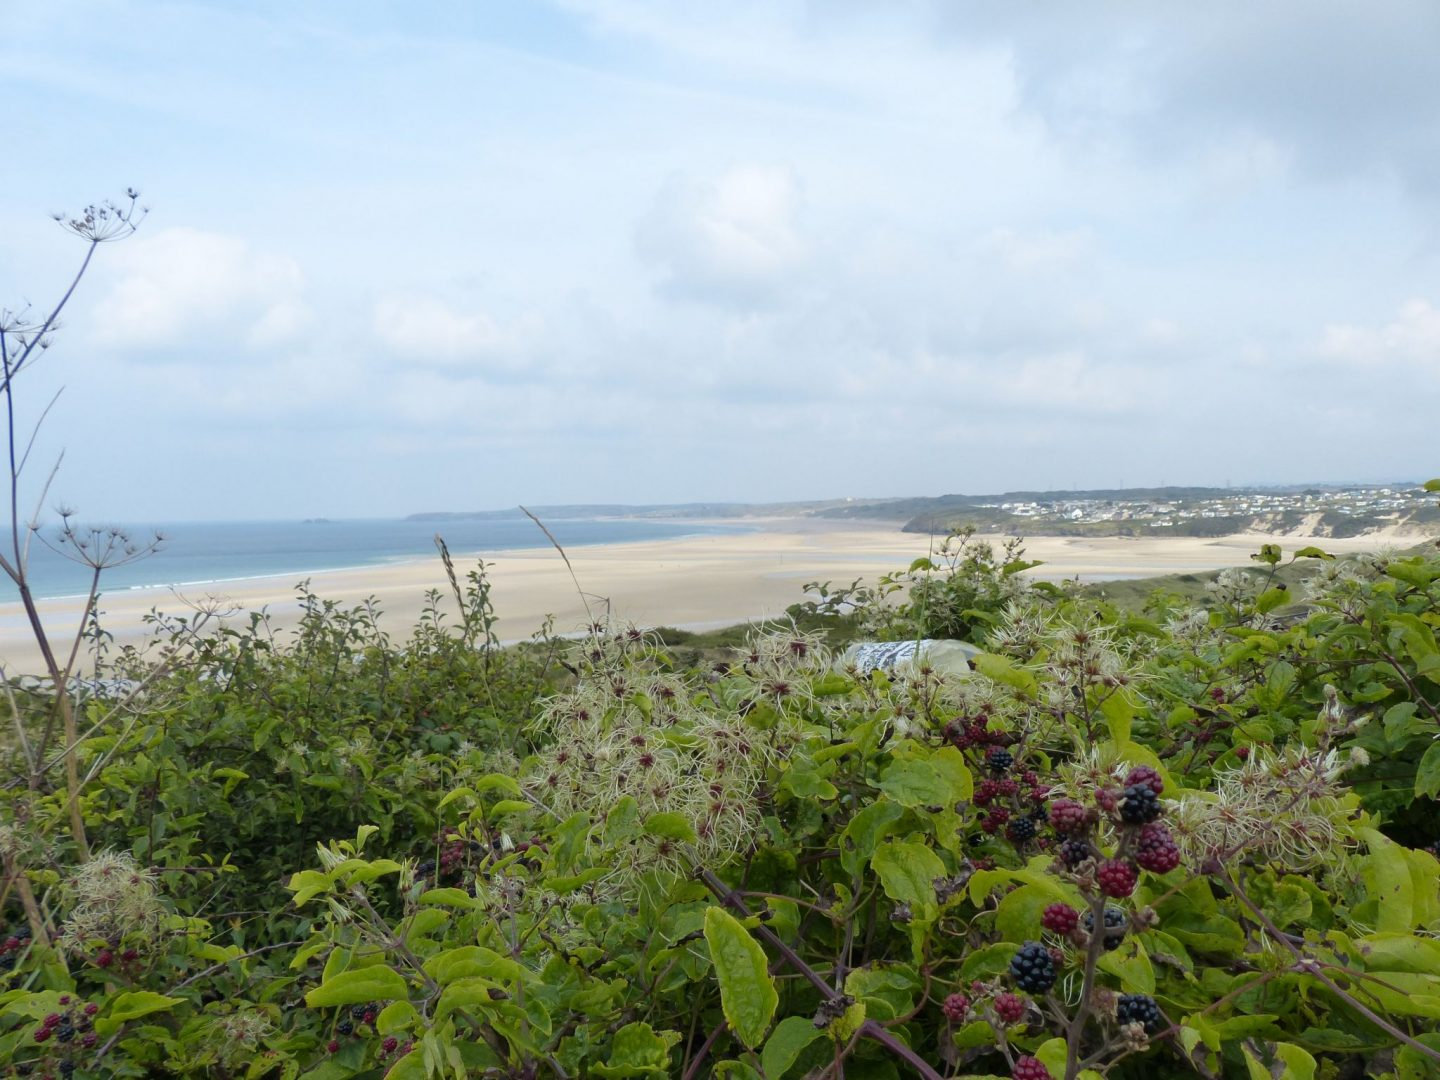 Views on the trail from Carbis Bay, Cornwall